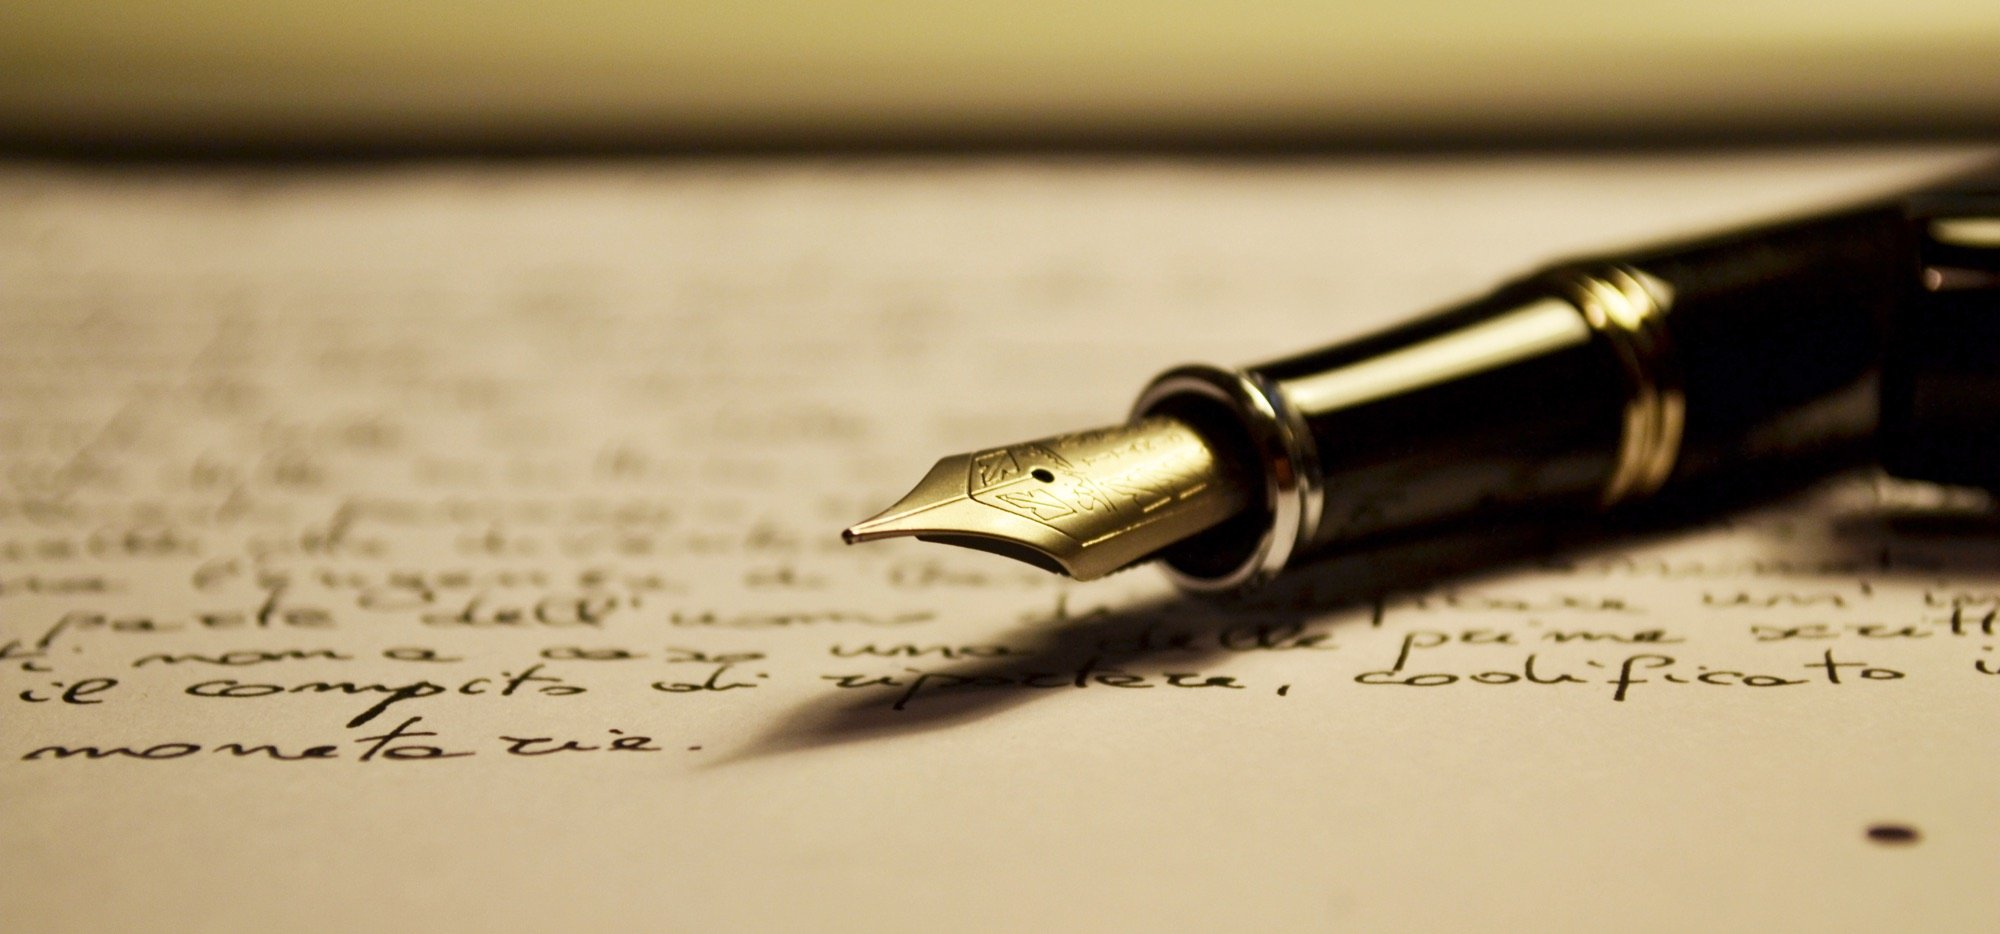 Eleven Things They Should Have Told You About Writing